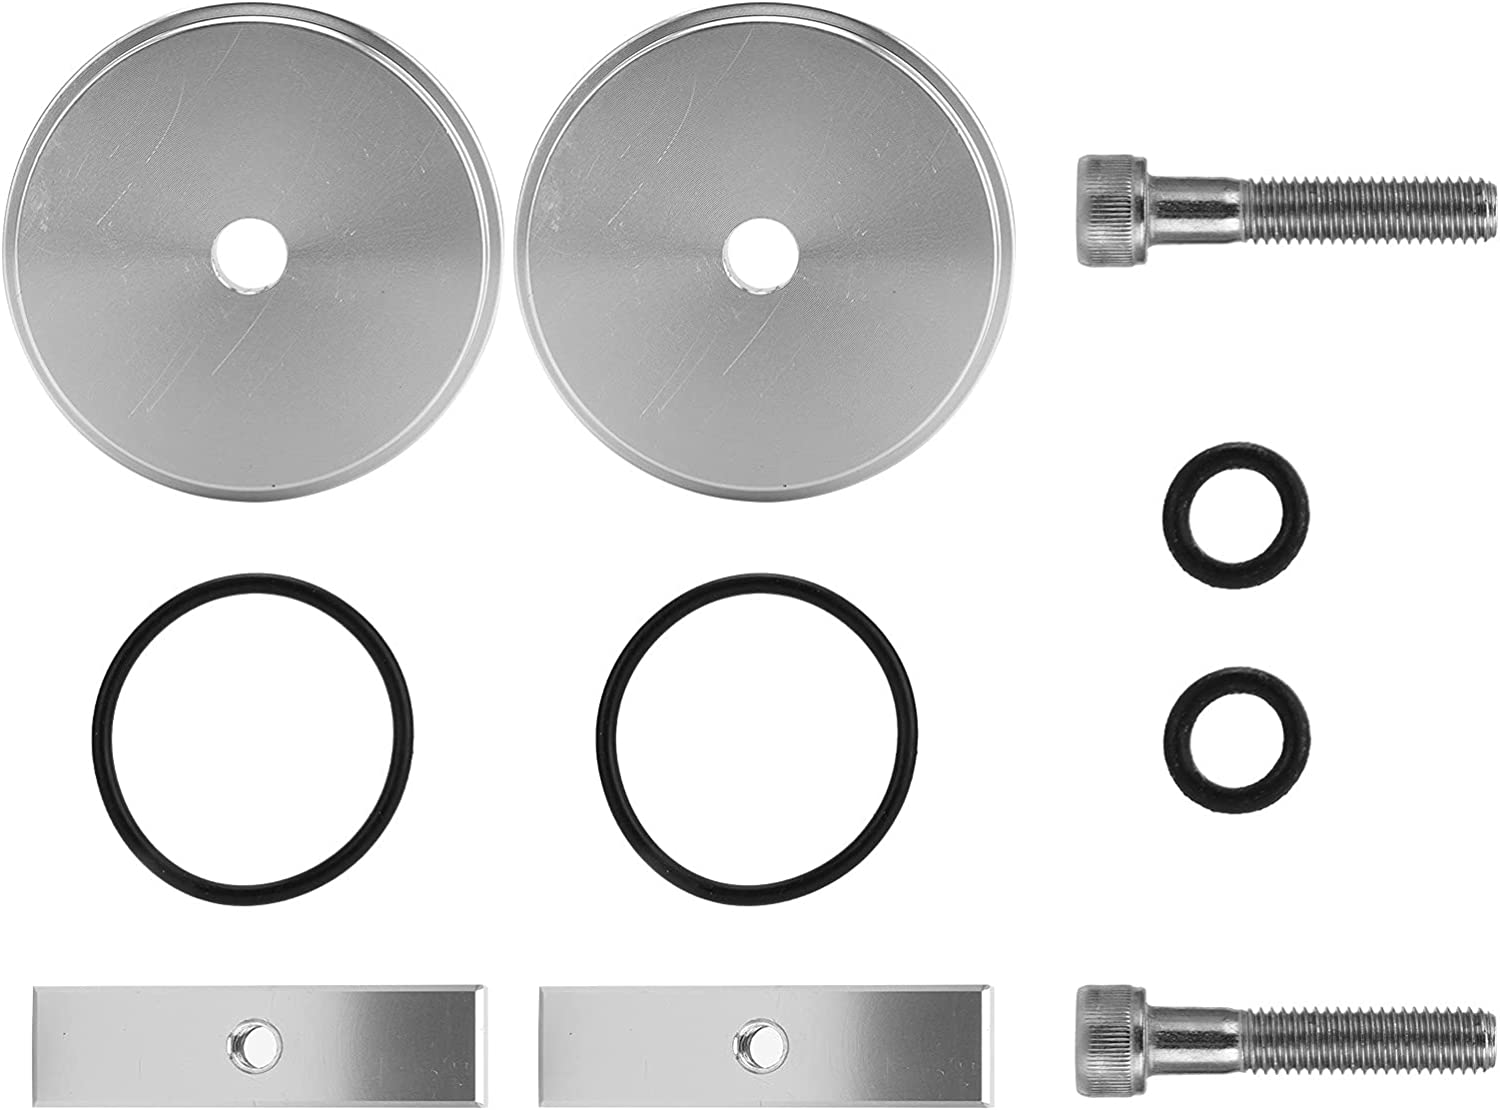 Portland Mall Akozon Freeze Plug Max 84% OFF Kit with Replacement Rubber Aluminum O-Rings